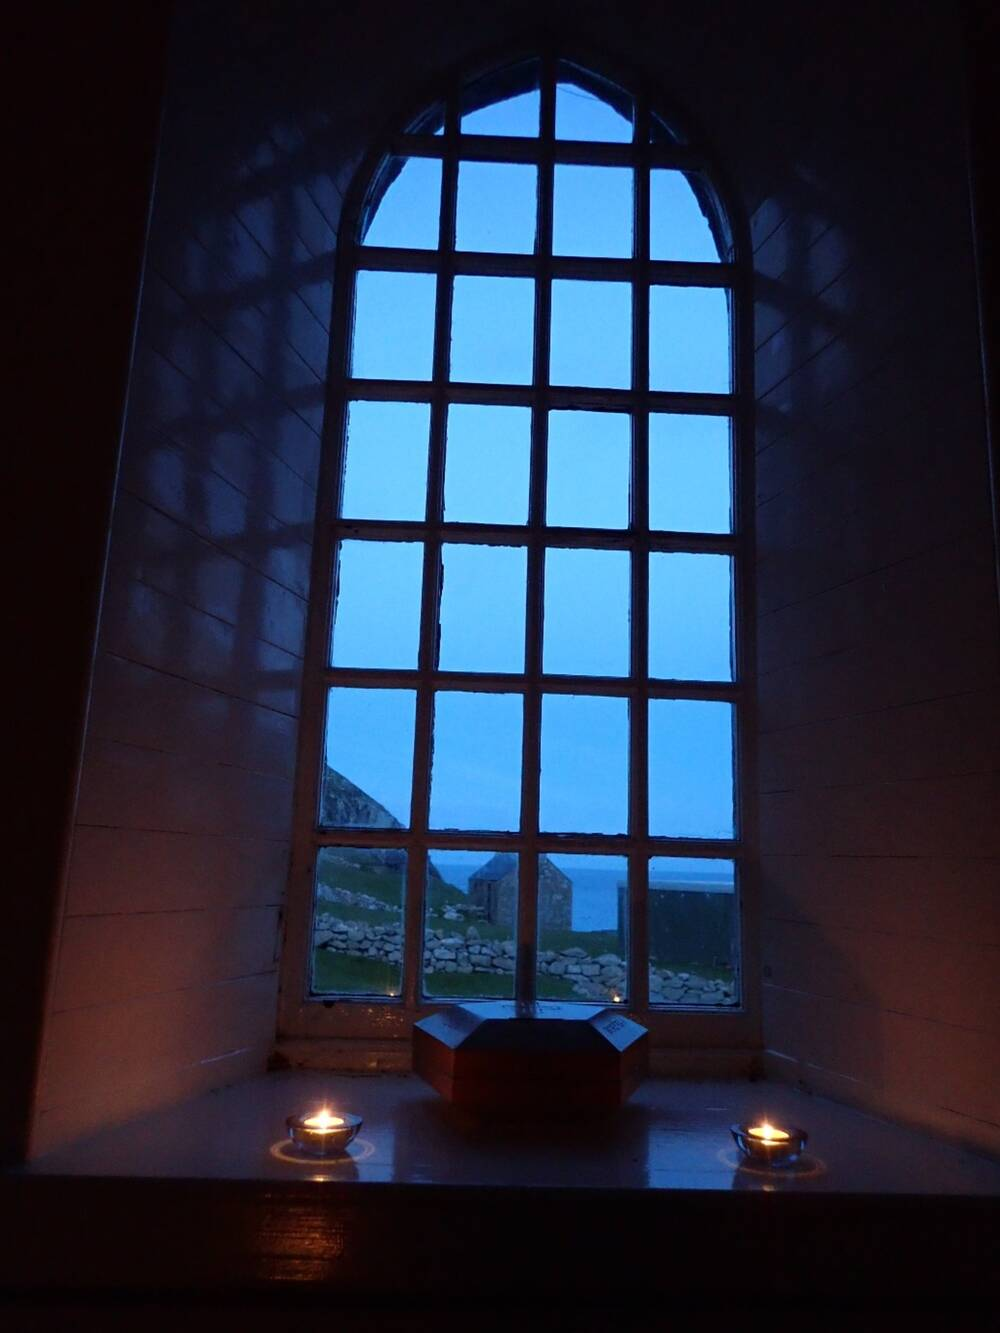 A view of a stone wall and hut from inside the church. It looks through a large window. Lit tealights flicker on the window sill.